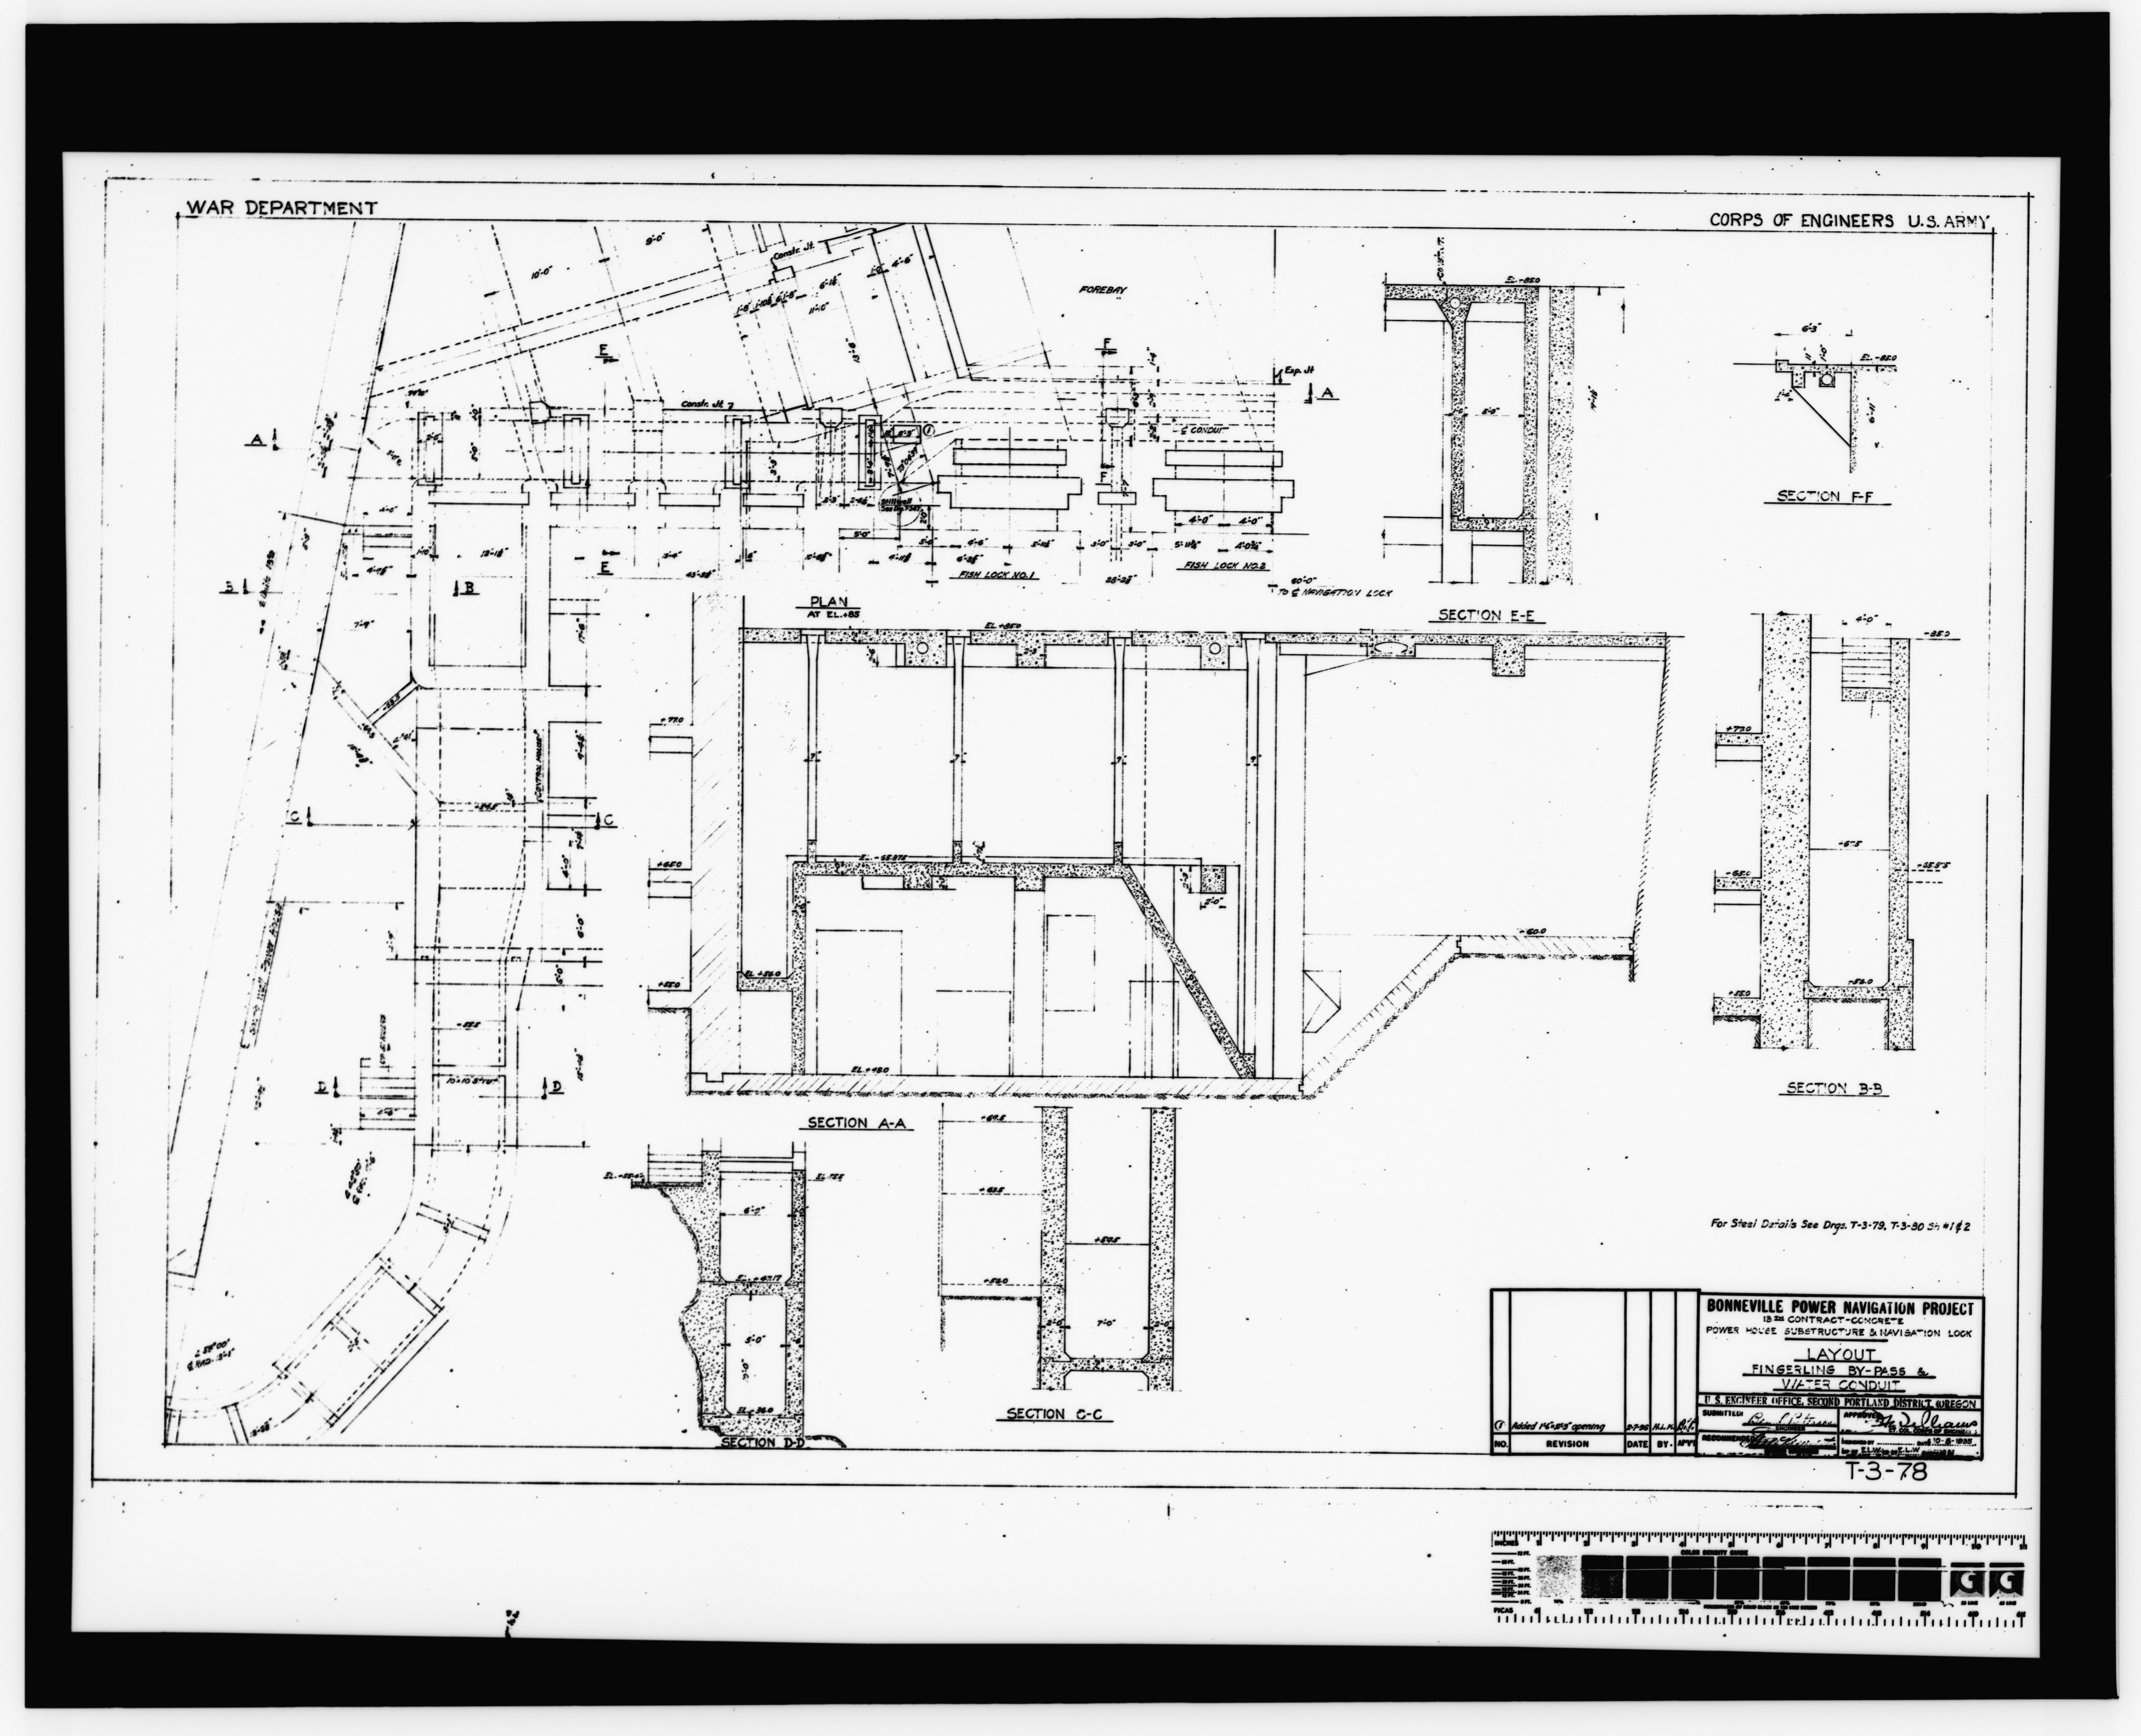 File Photocopy Of Original Construction Drawing Dated 8